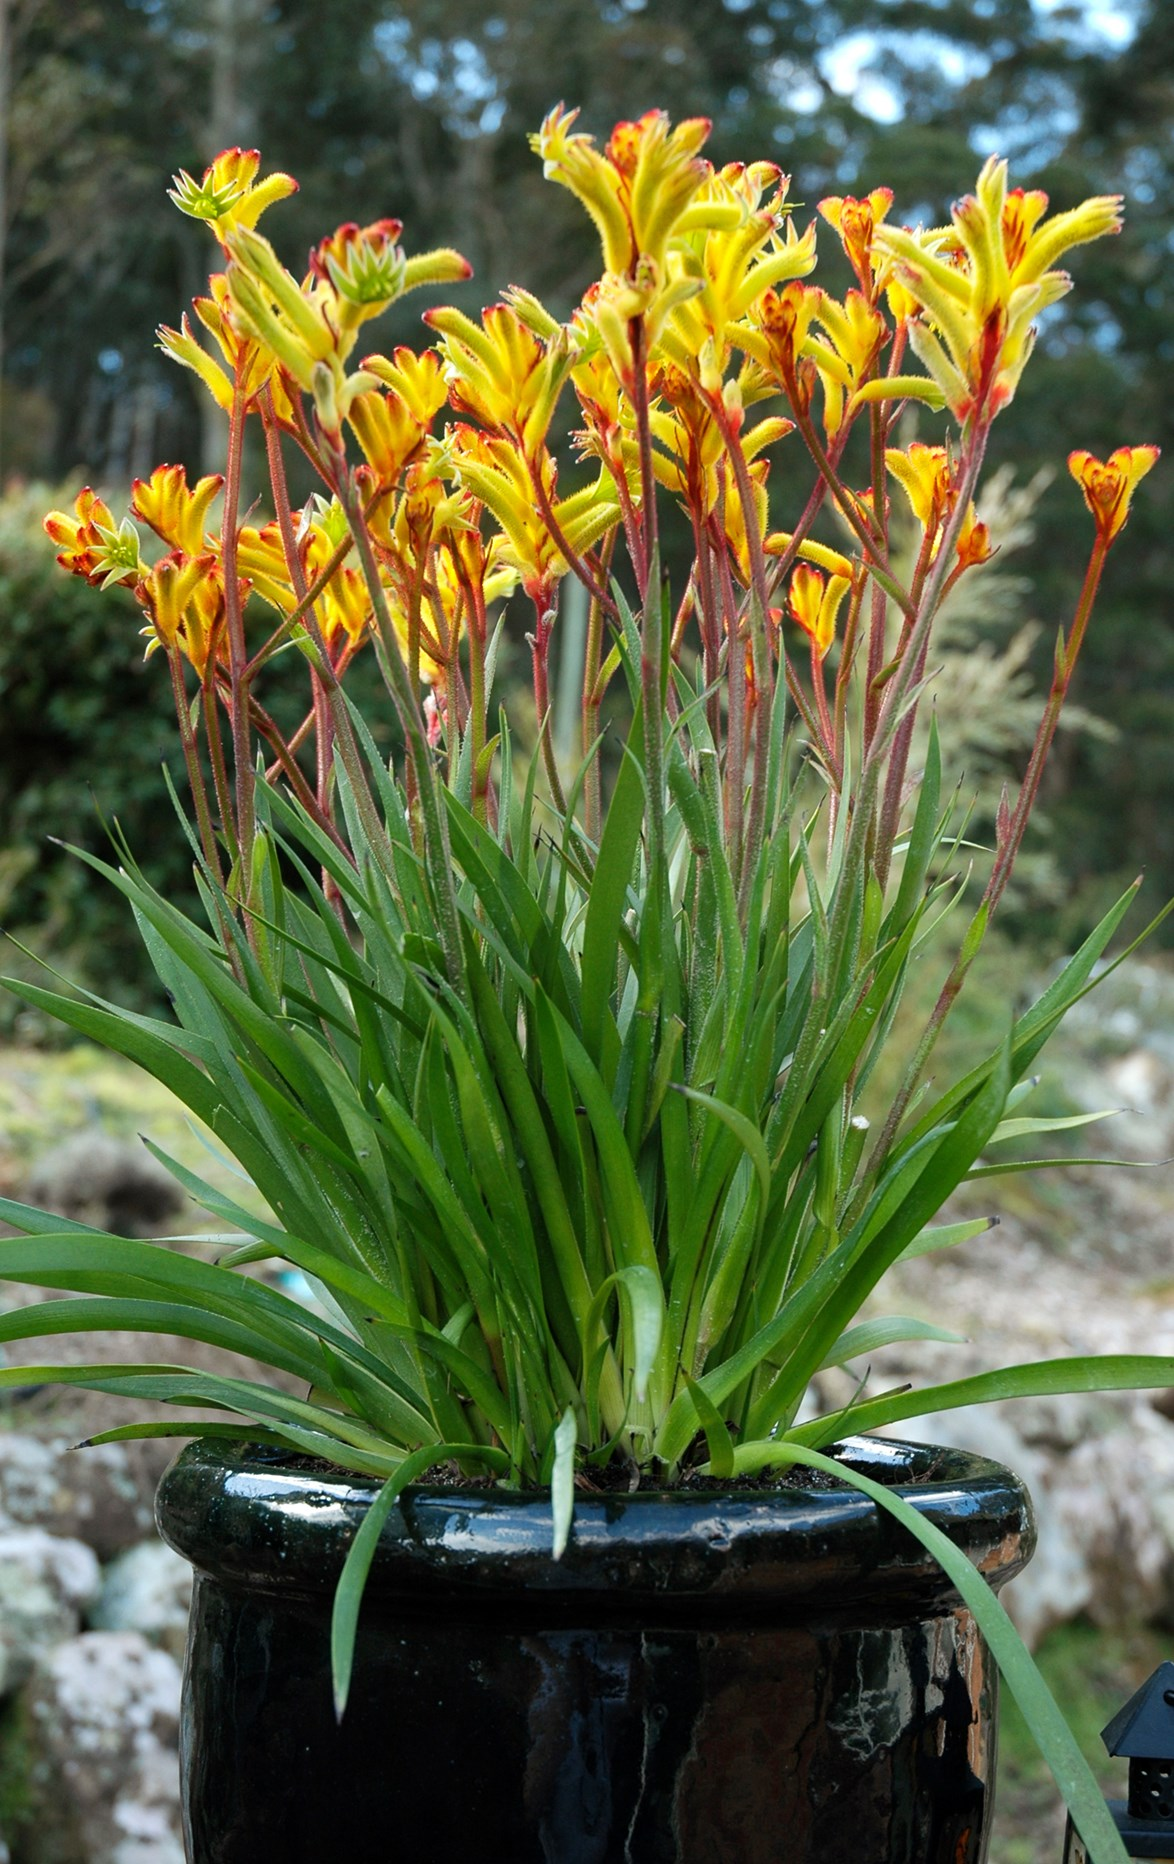 Dwarf kangaroo paw (Anigozanthos Bush Gems series Bush Fantasy) is popular for its superior flowering and performance. *Photo: Ramm Botanicals*